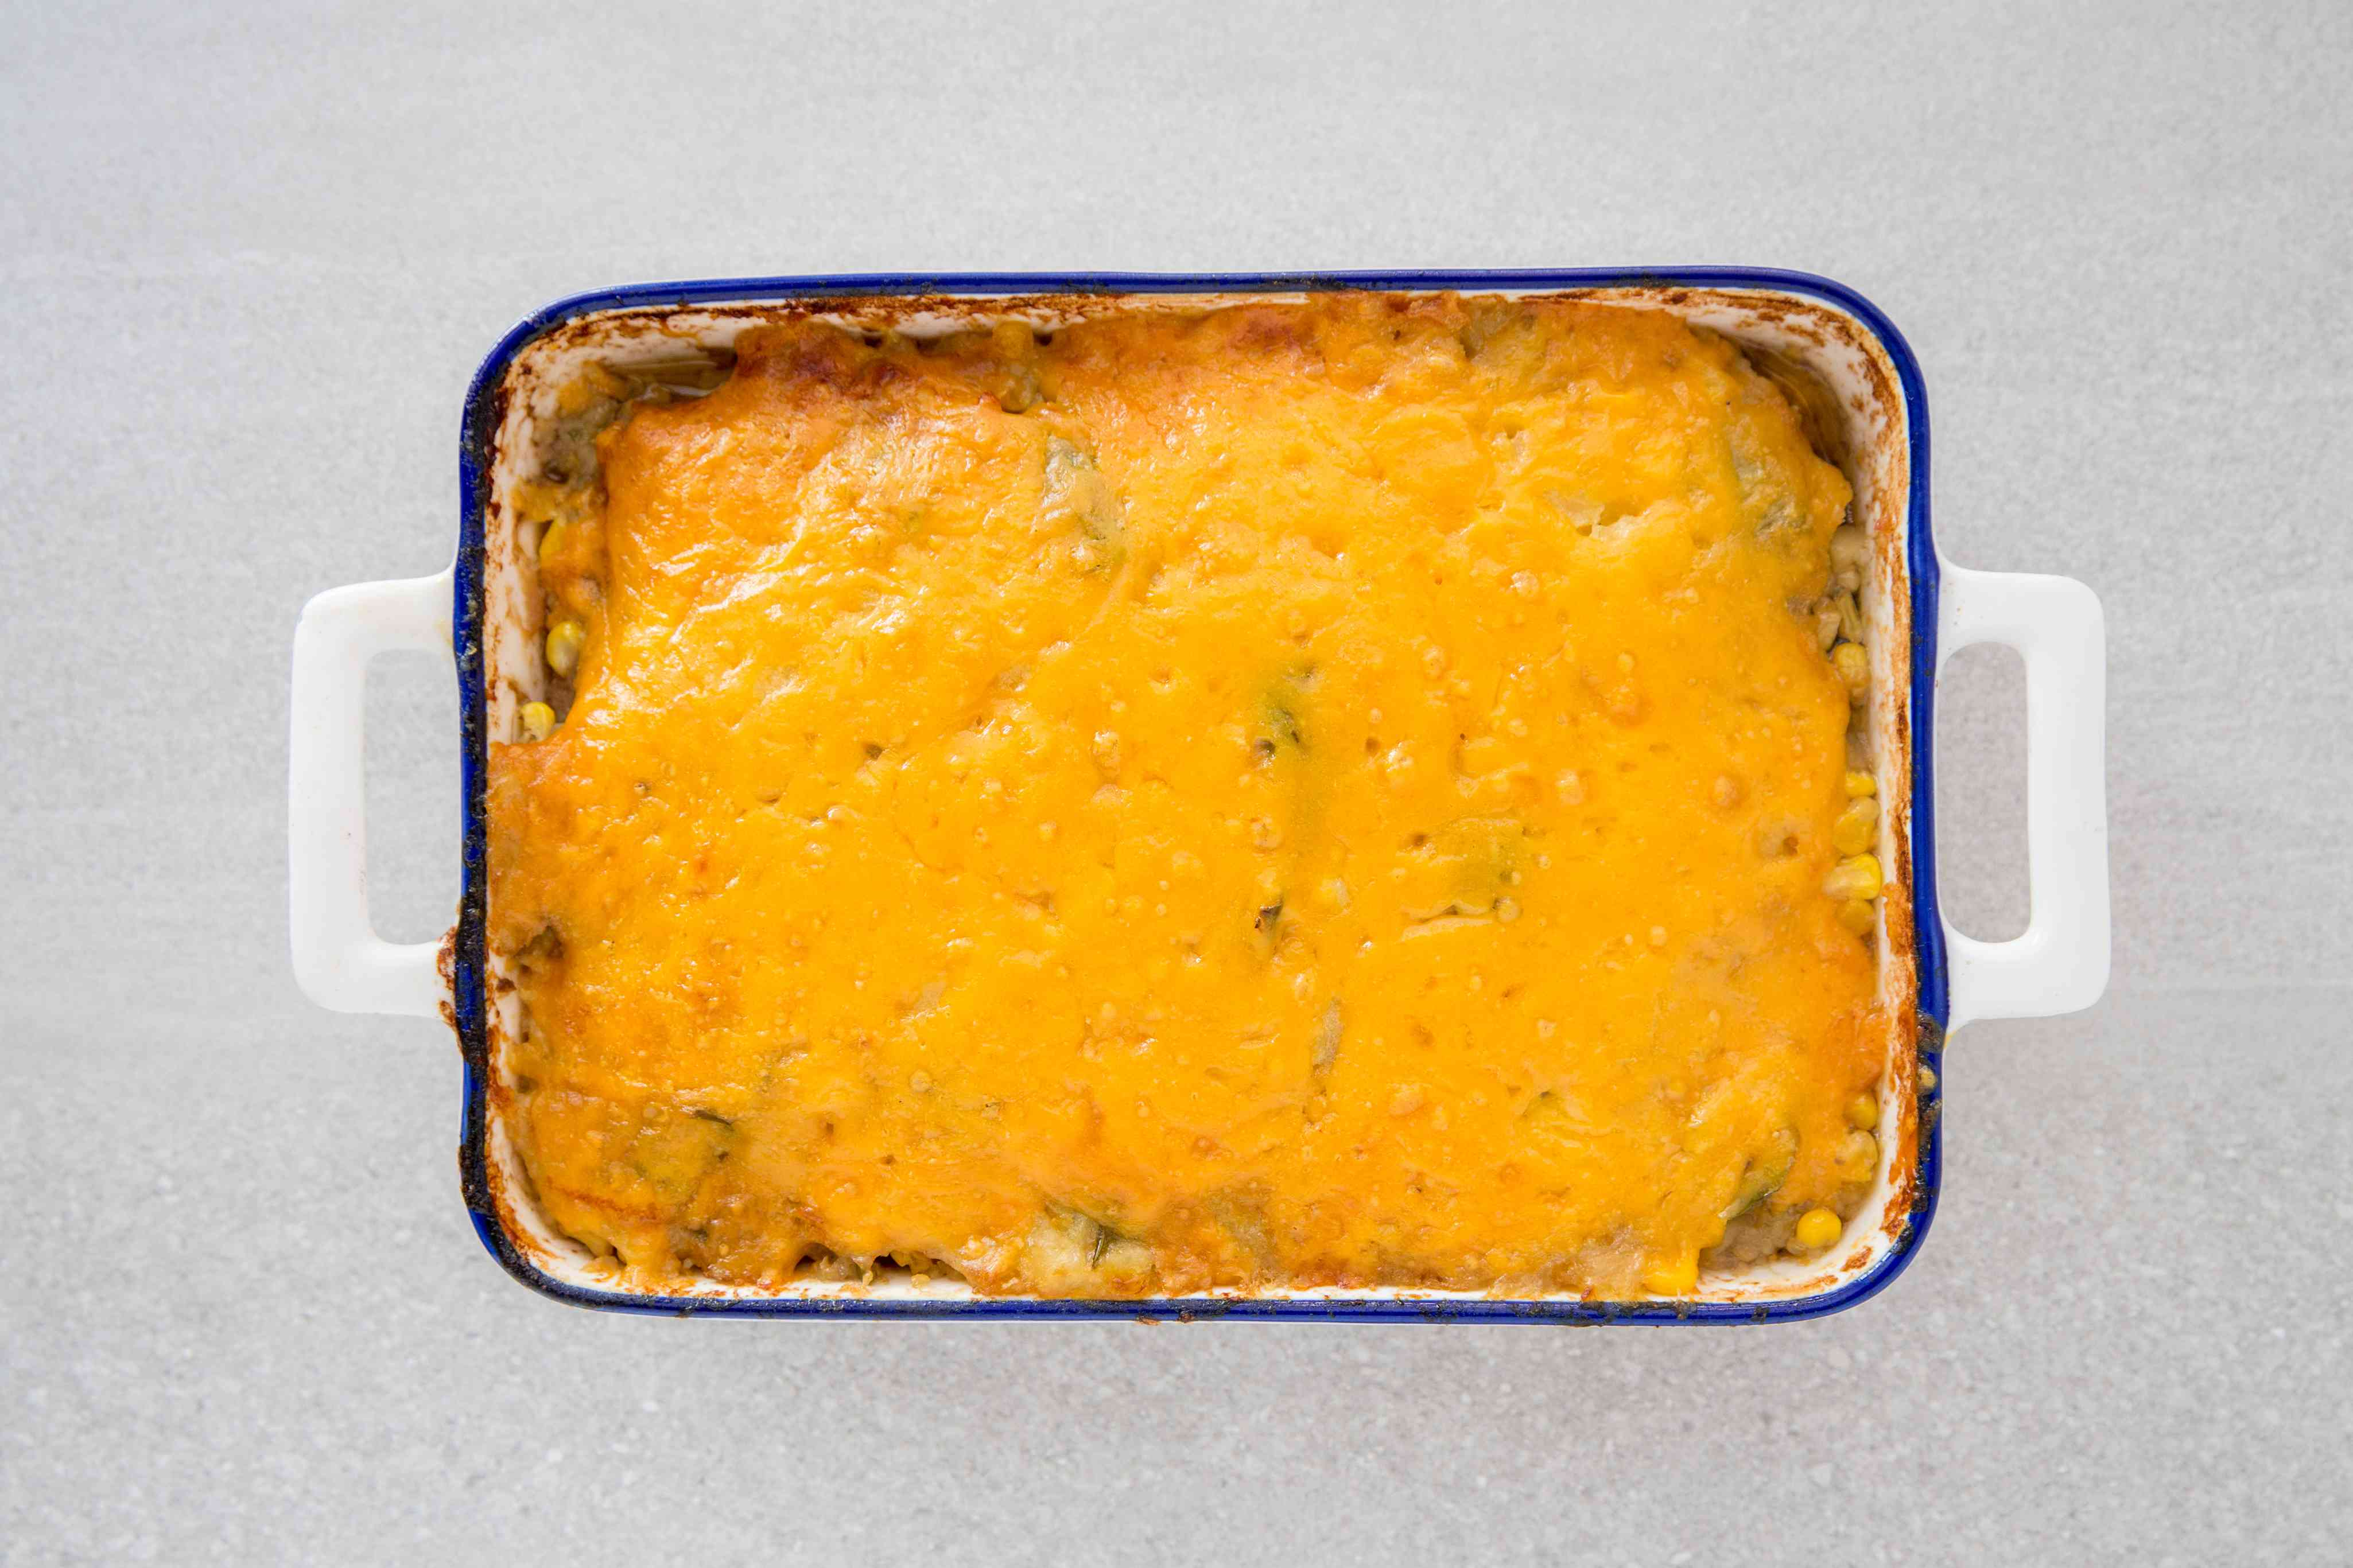 Ground Beef Casserole With Potatoes and Cheese in a baking dish